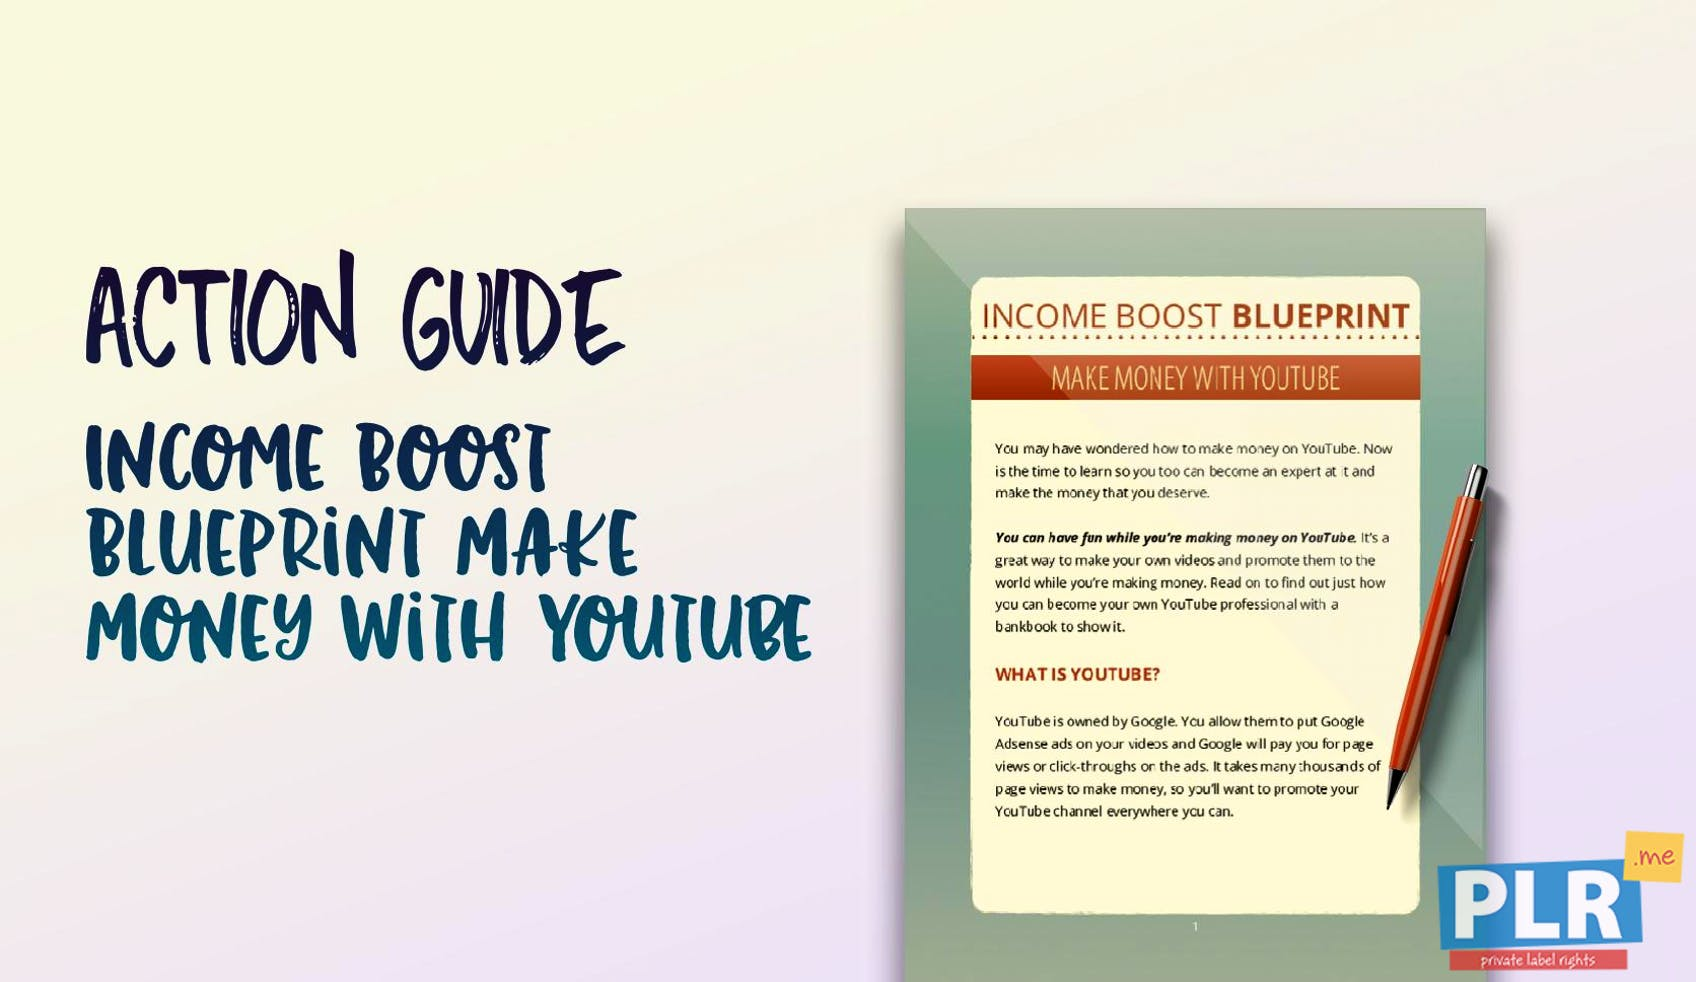 Income Boost Blueprint Make Money With Youtube